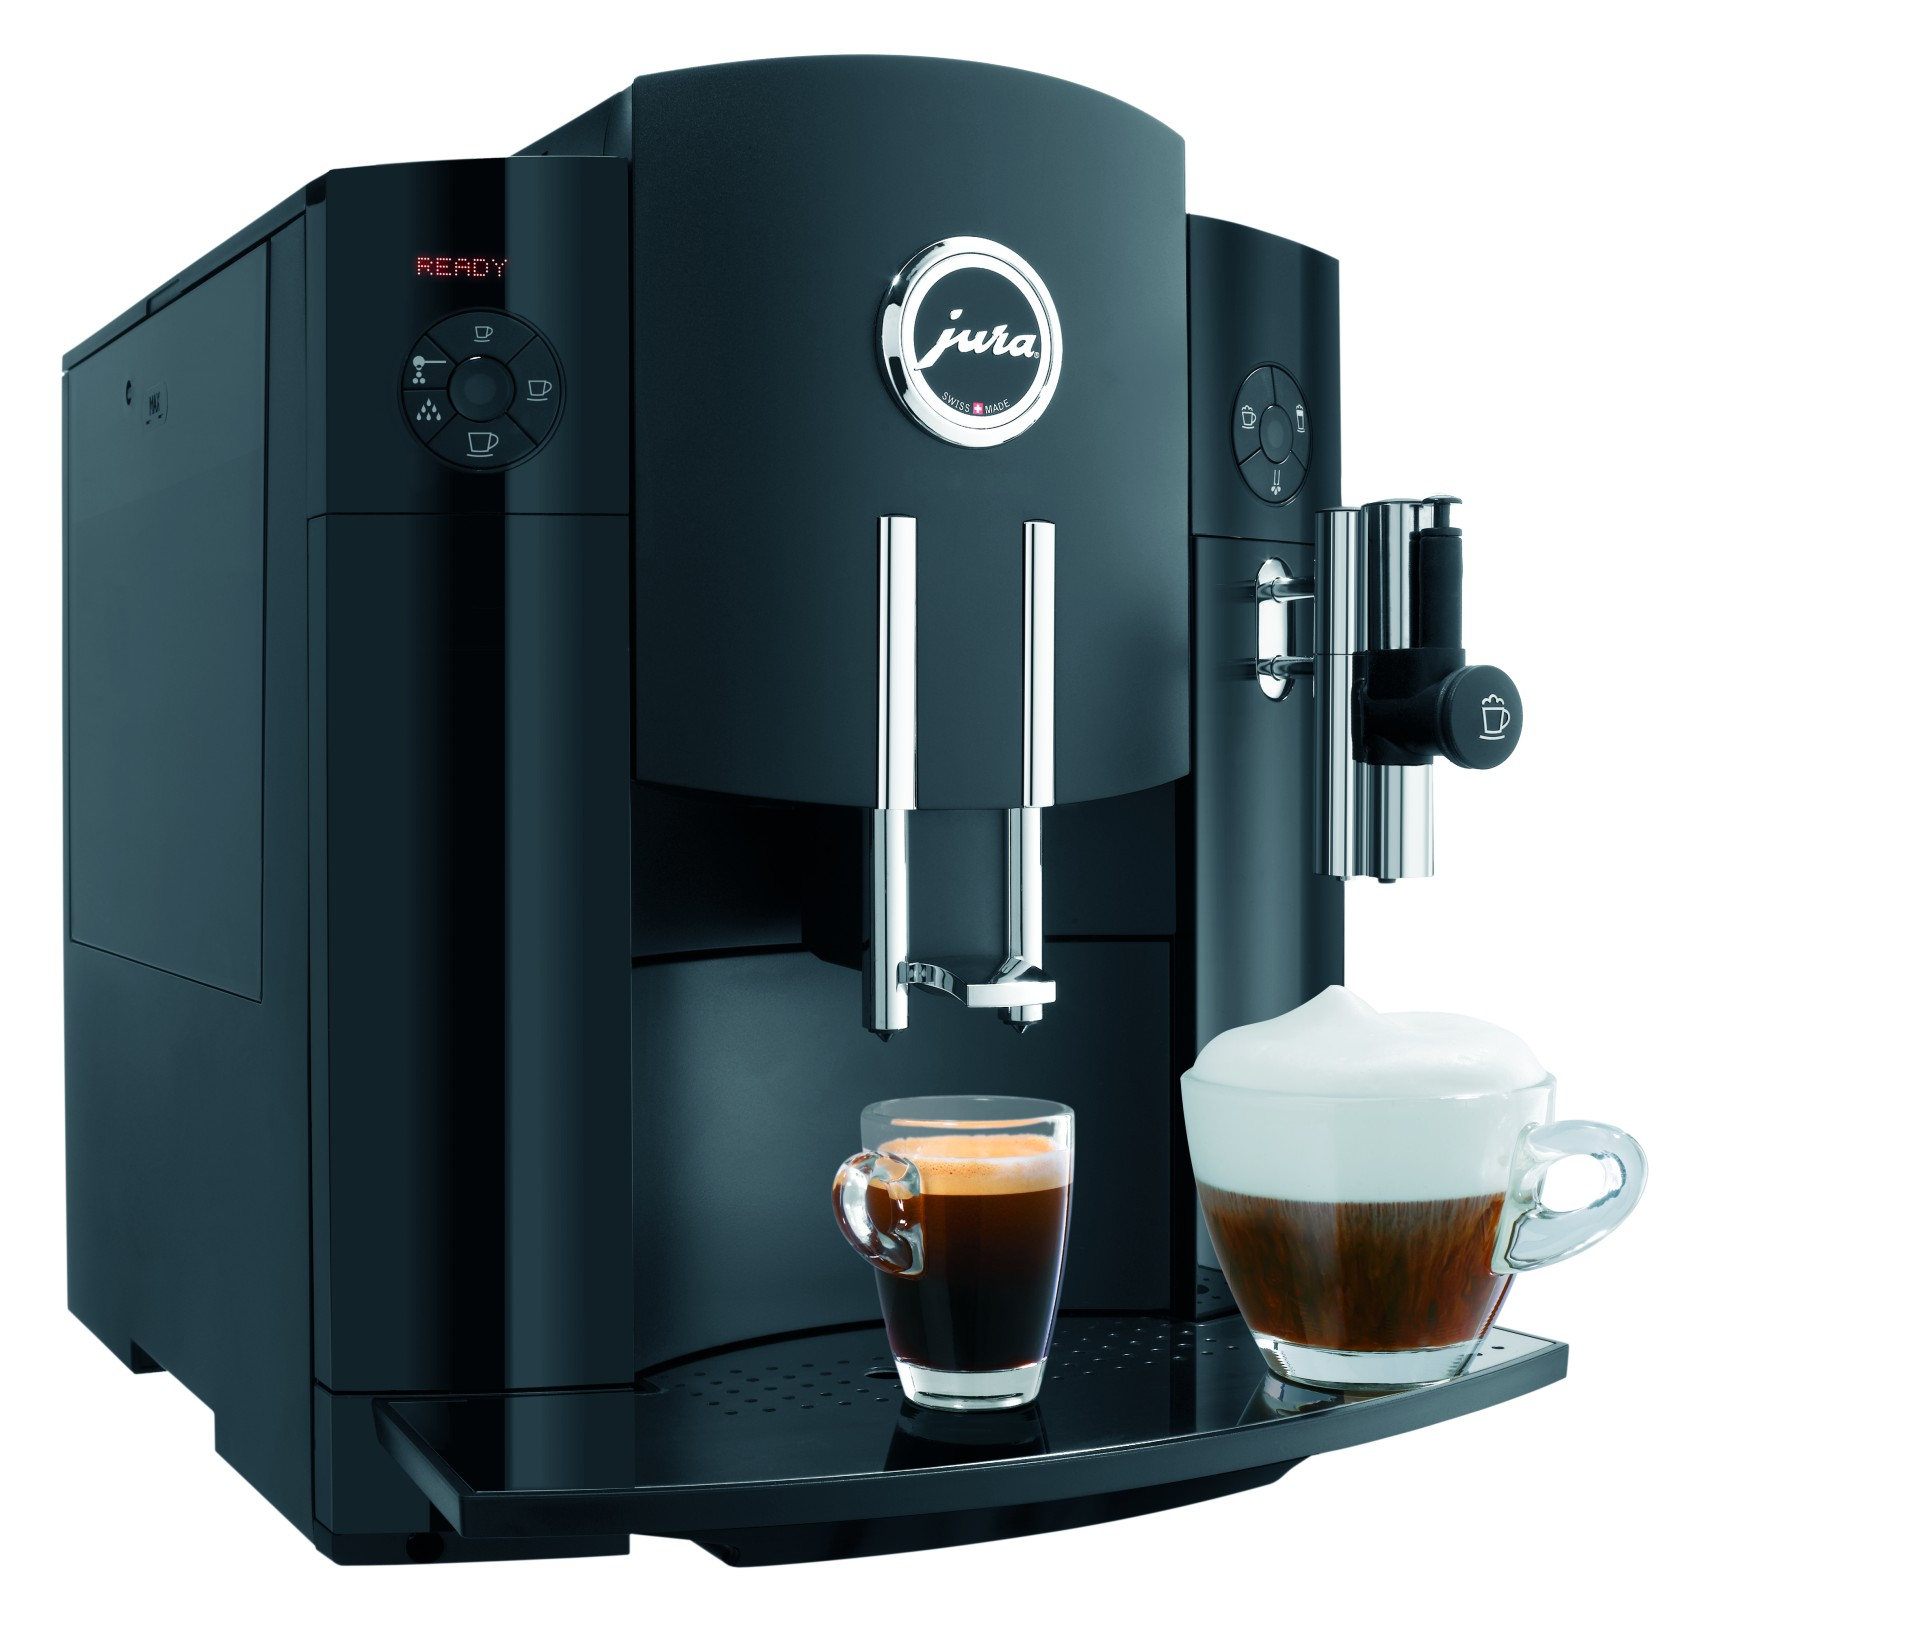 jura impressa c9 automatic coffee machine coffitascoffitas. Black Bedroom Furniture Sets. Home Design Ideas